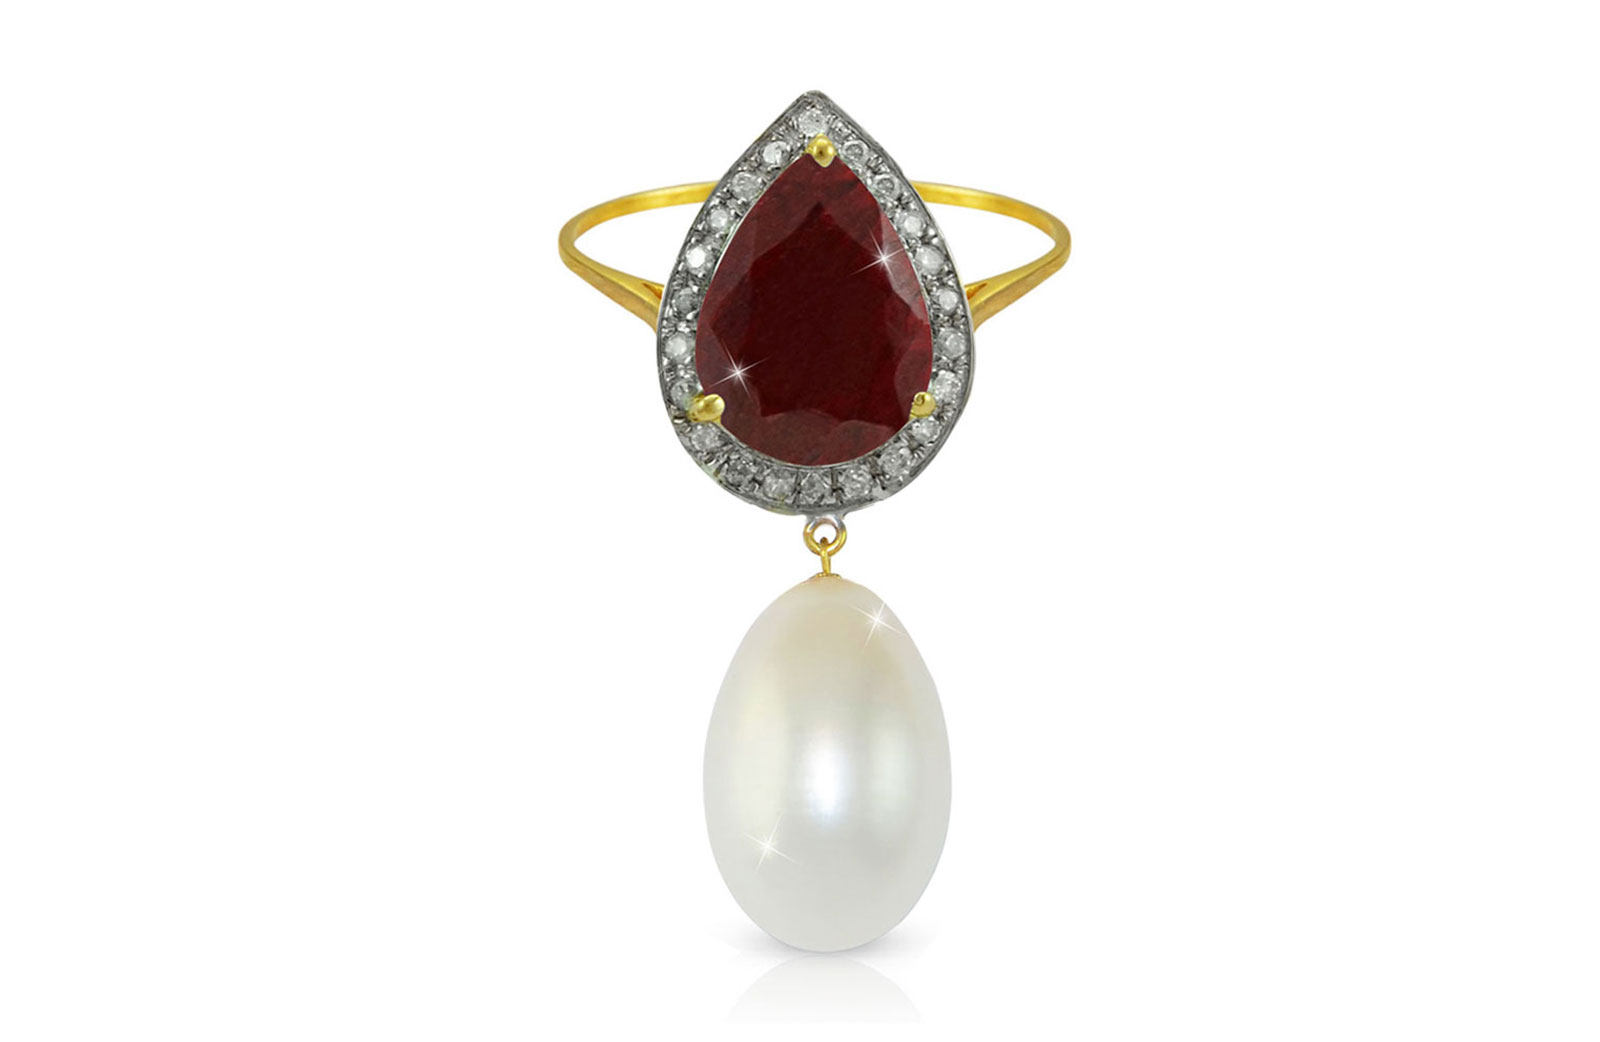 Vera Perla 18K Gold 0.12ct Diamonds, Royal Indian Ruby and 13mm Pearl Ring